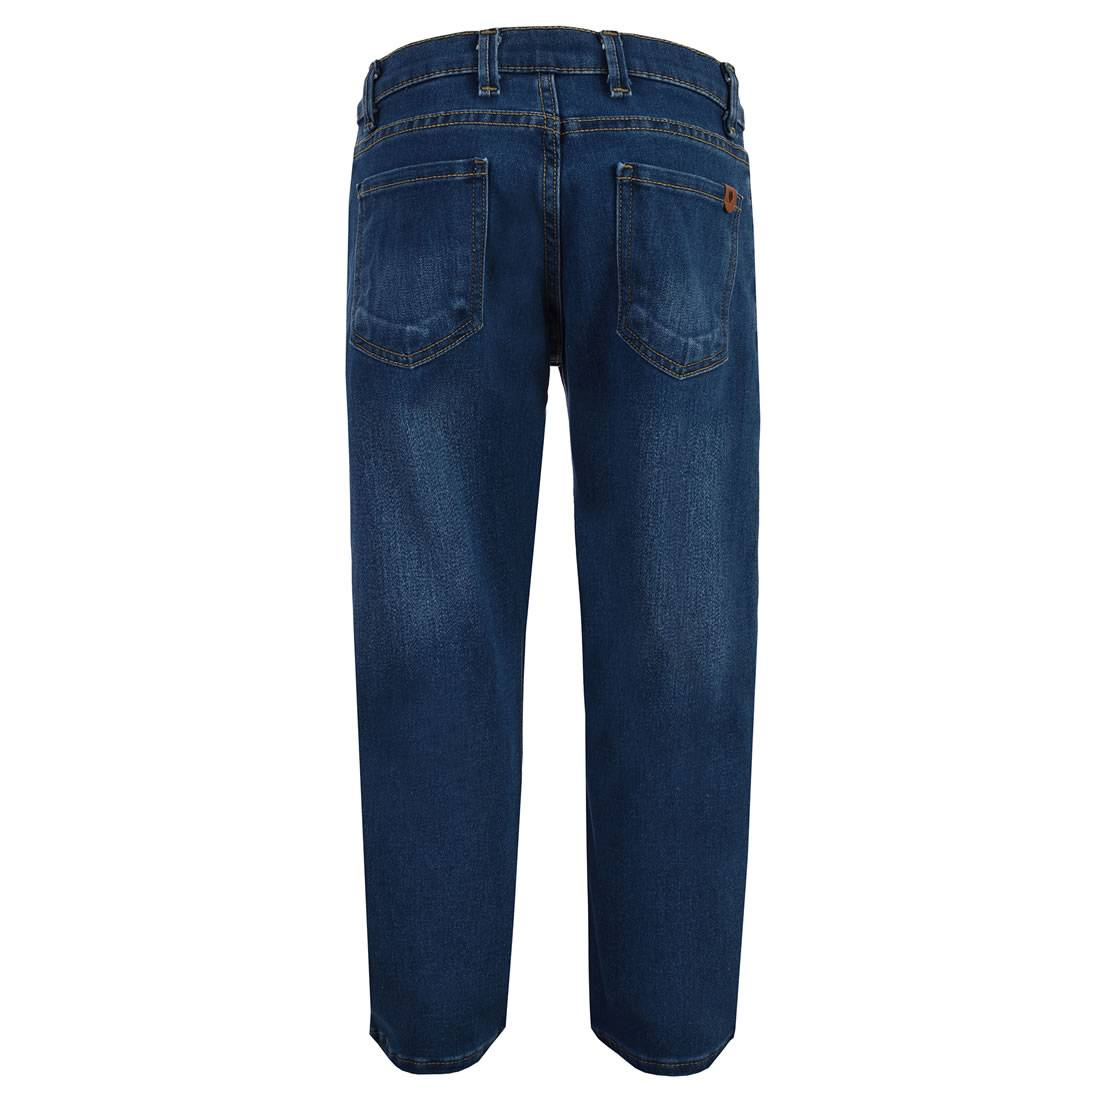 021403206917-02-Jeans-Boys-Boot-Cut-Hand-Sand-Whiskers-Con-Elastano-Cintura-Ajustable-Super-Stone-yale